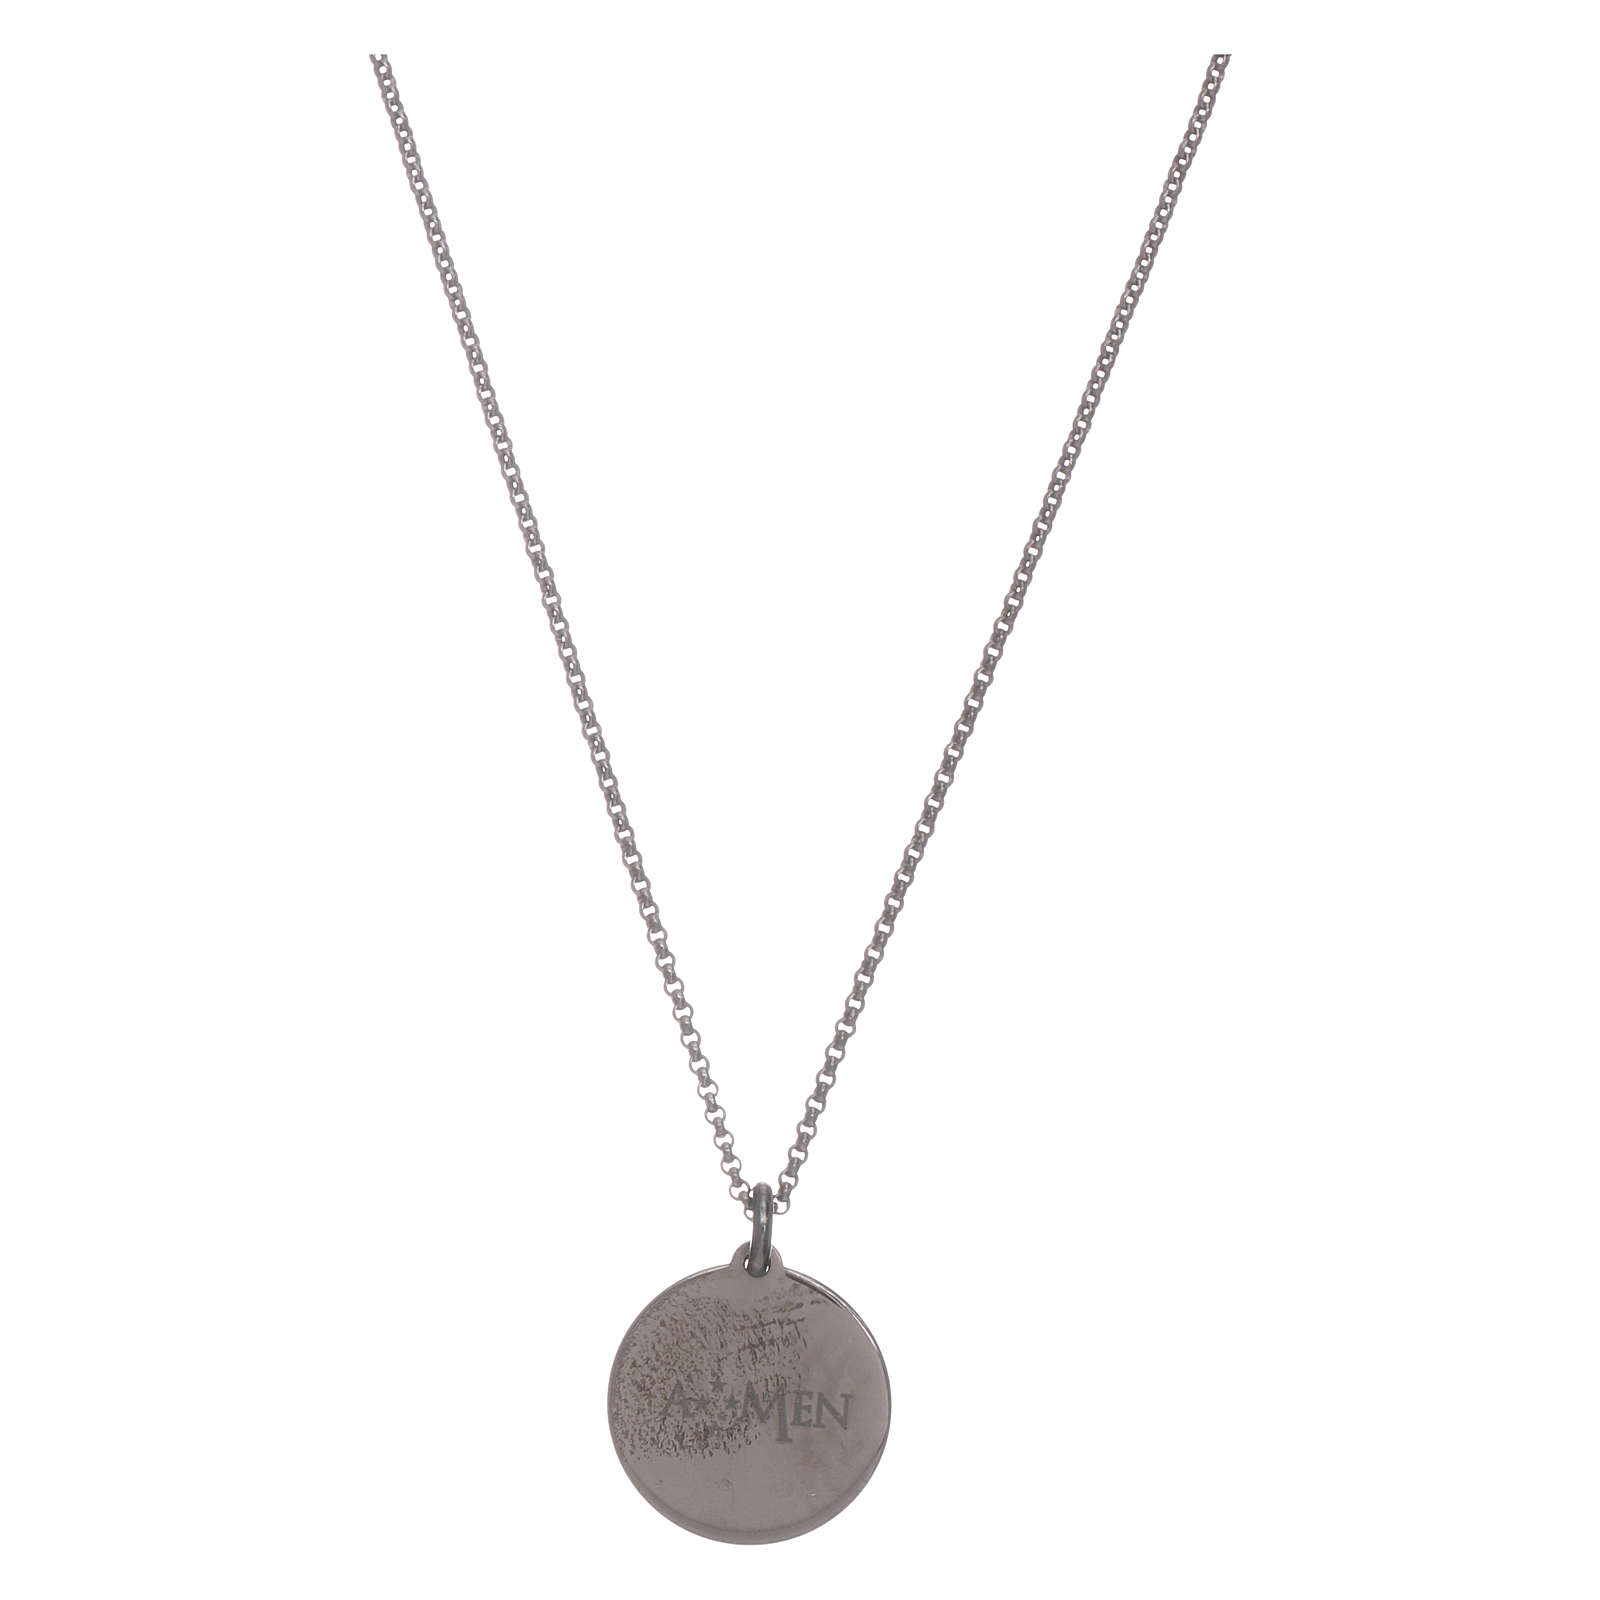 AMEN Hail Mary necklace in 925 sterling silver finished in burnish 4